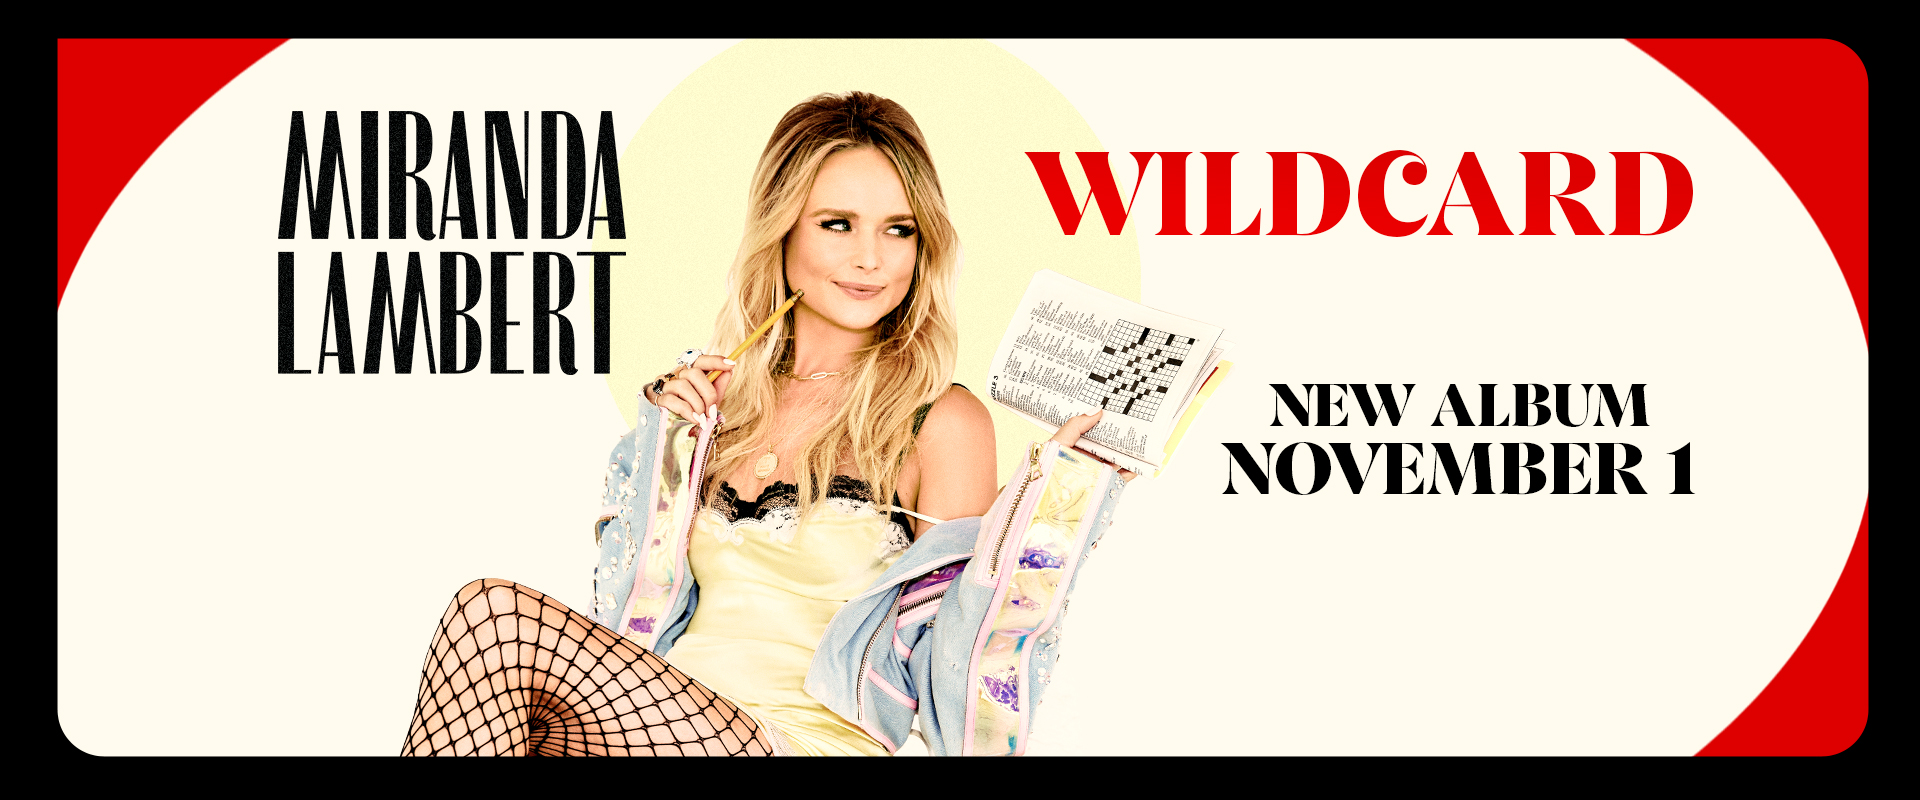 Miranda Lambert Wildcard Available Now